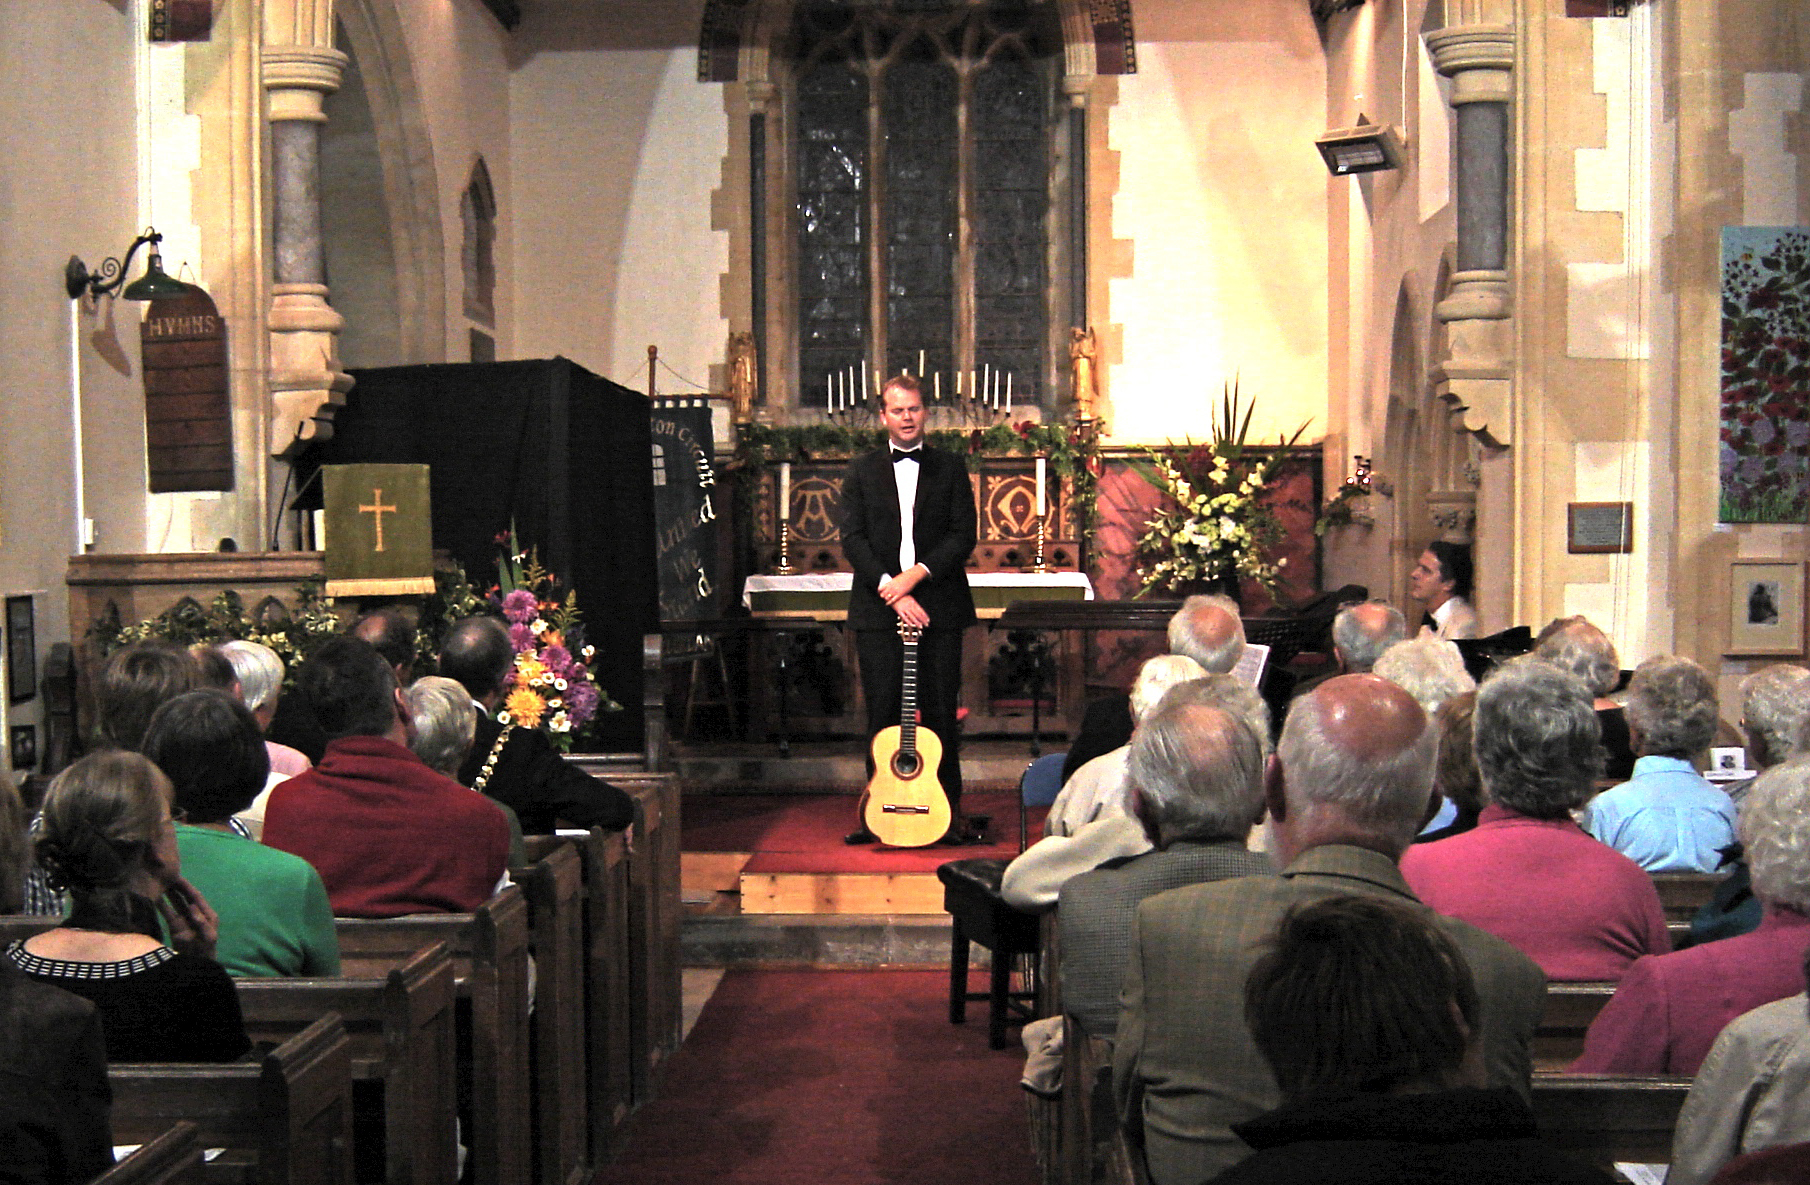 Jon Pickard on stage in concert